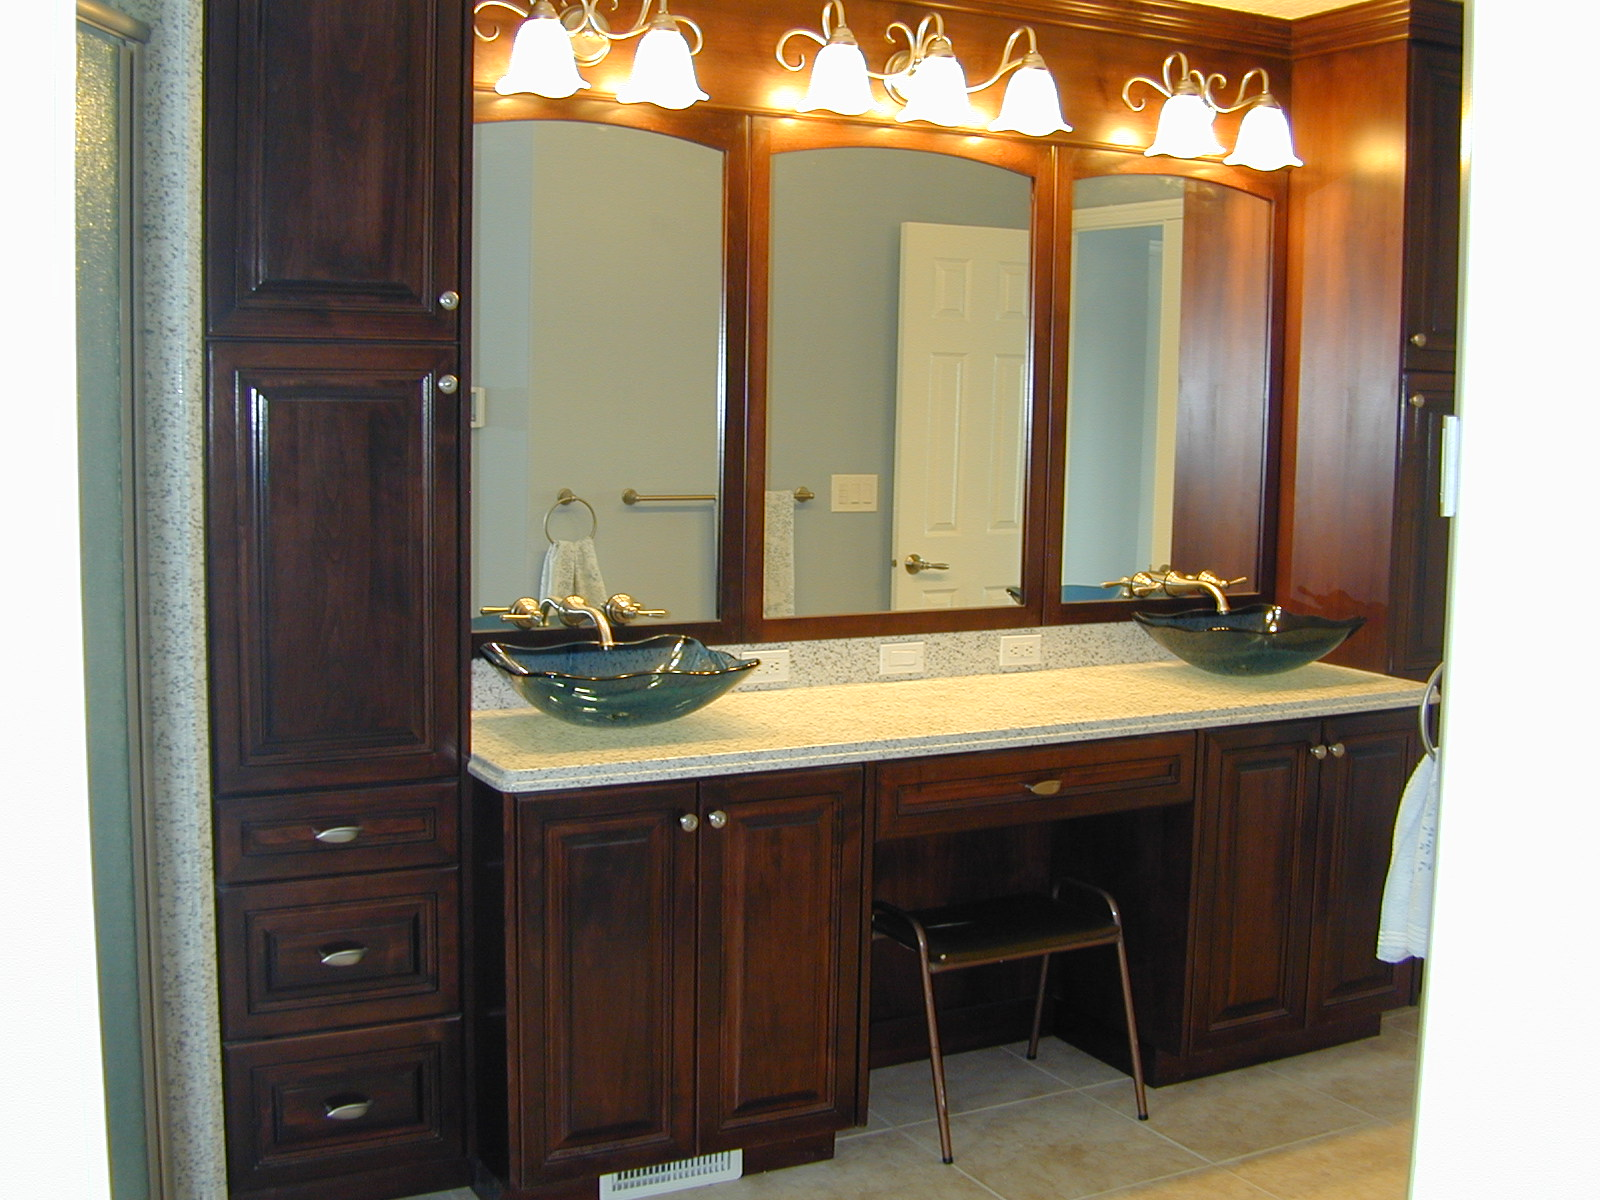 Makeup vanity for bathroom - Bathroom Vanity With Makeup Area Bathroom Vanities With Makeup Area